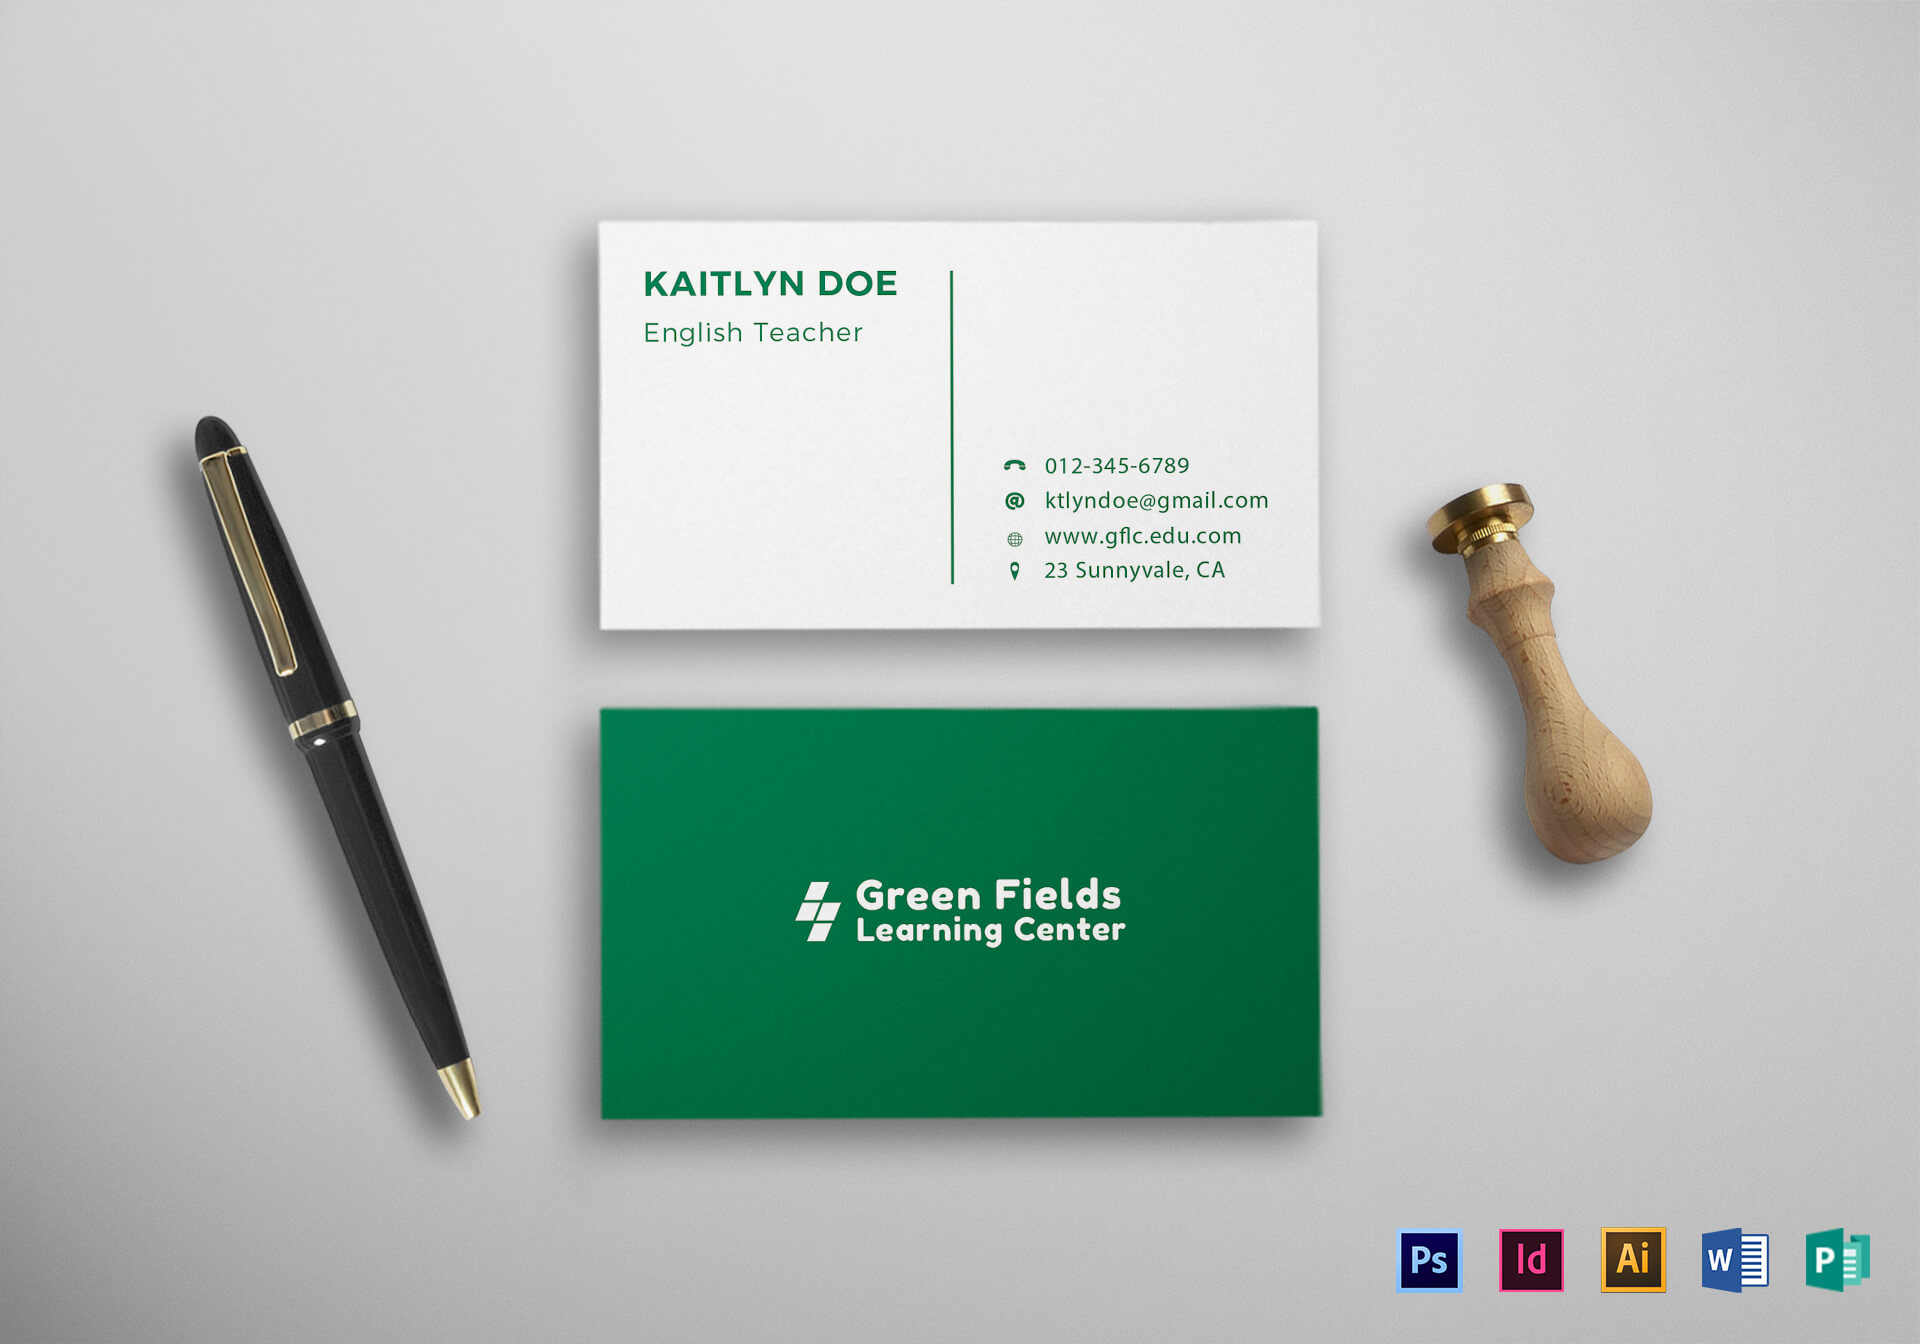 020 Teachers Business Card Mock Up Ms Word Template Free With Business Cards For Teachers Templates Free